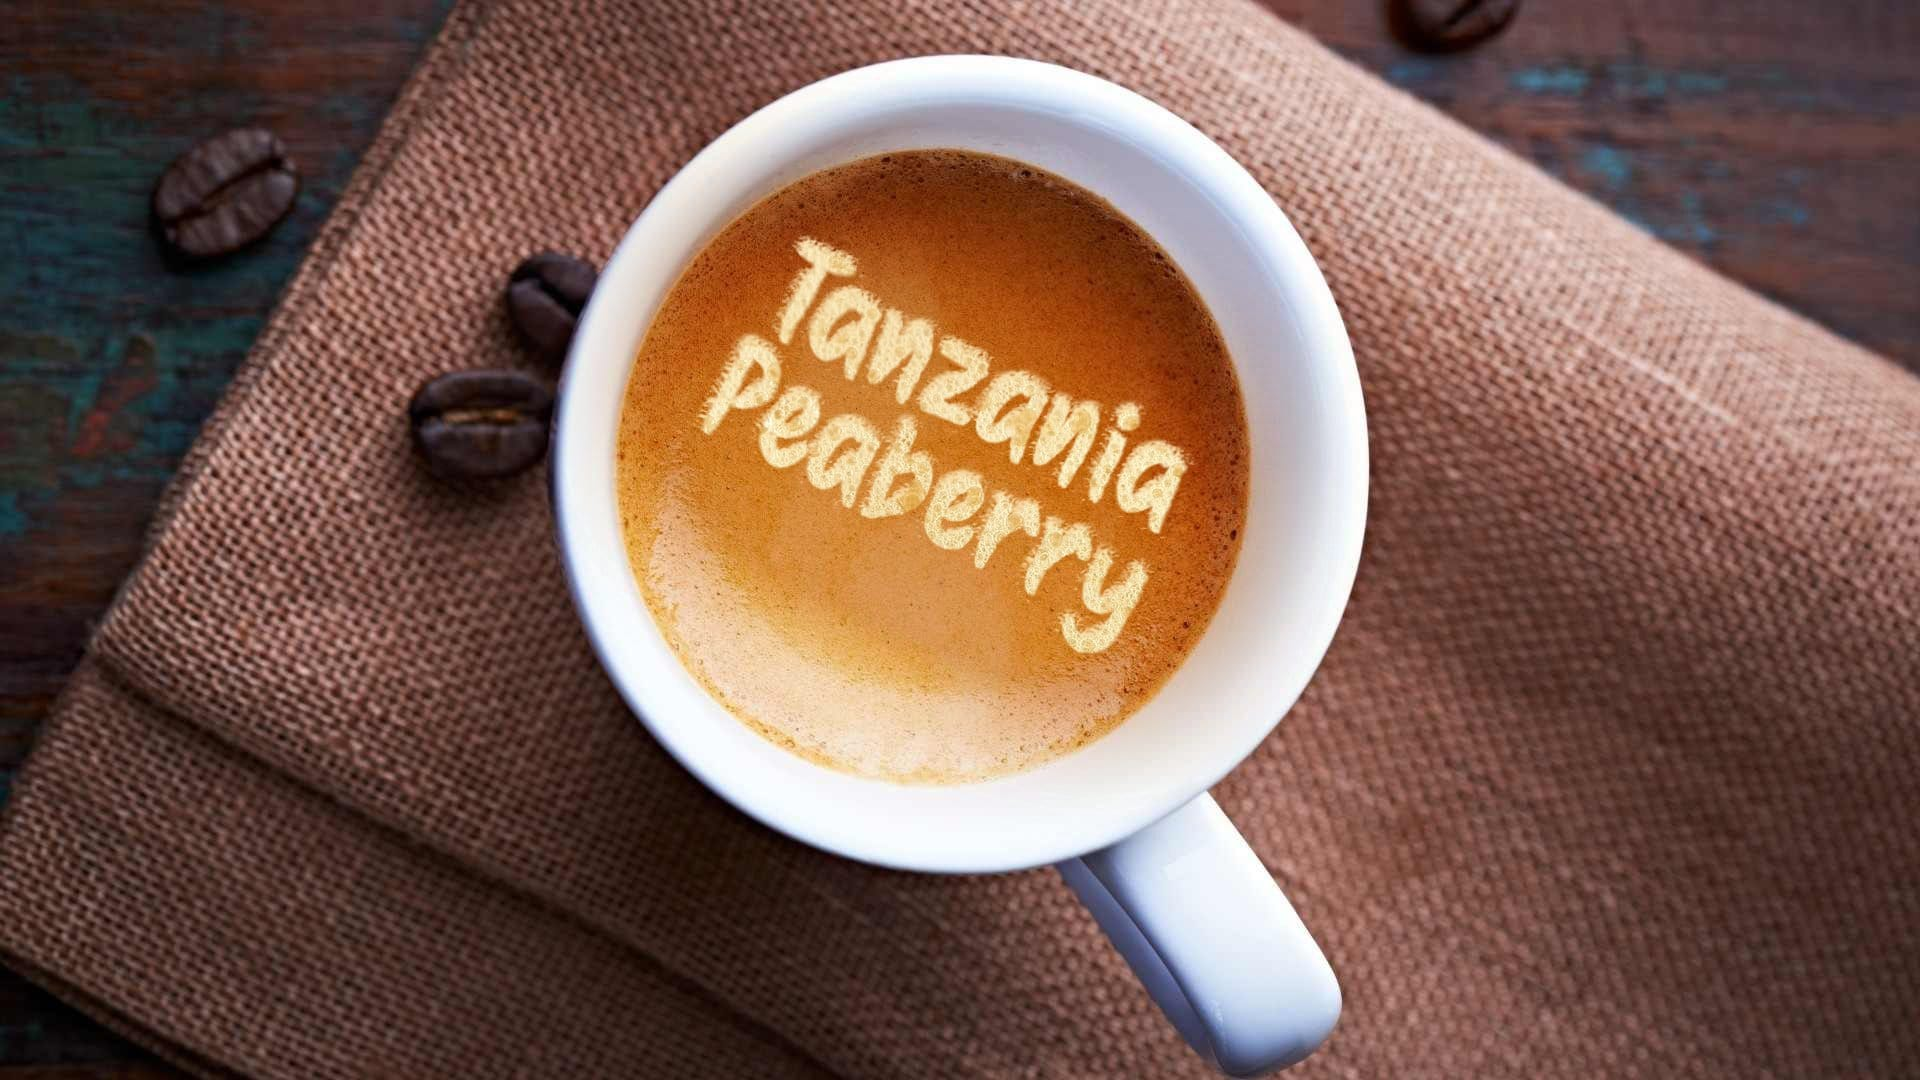 1/2 lb Custom Roasted Tanzania Peaberry Coffee - Fresh Ground or Whole Bean Coffee - Custom fresh Roasted Coffee made with freshest beans | Kona, Blue Mountain